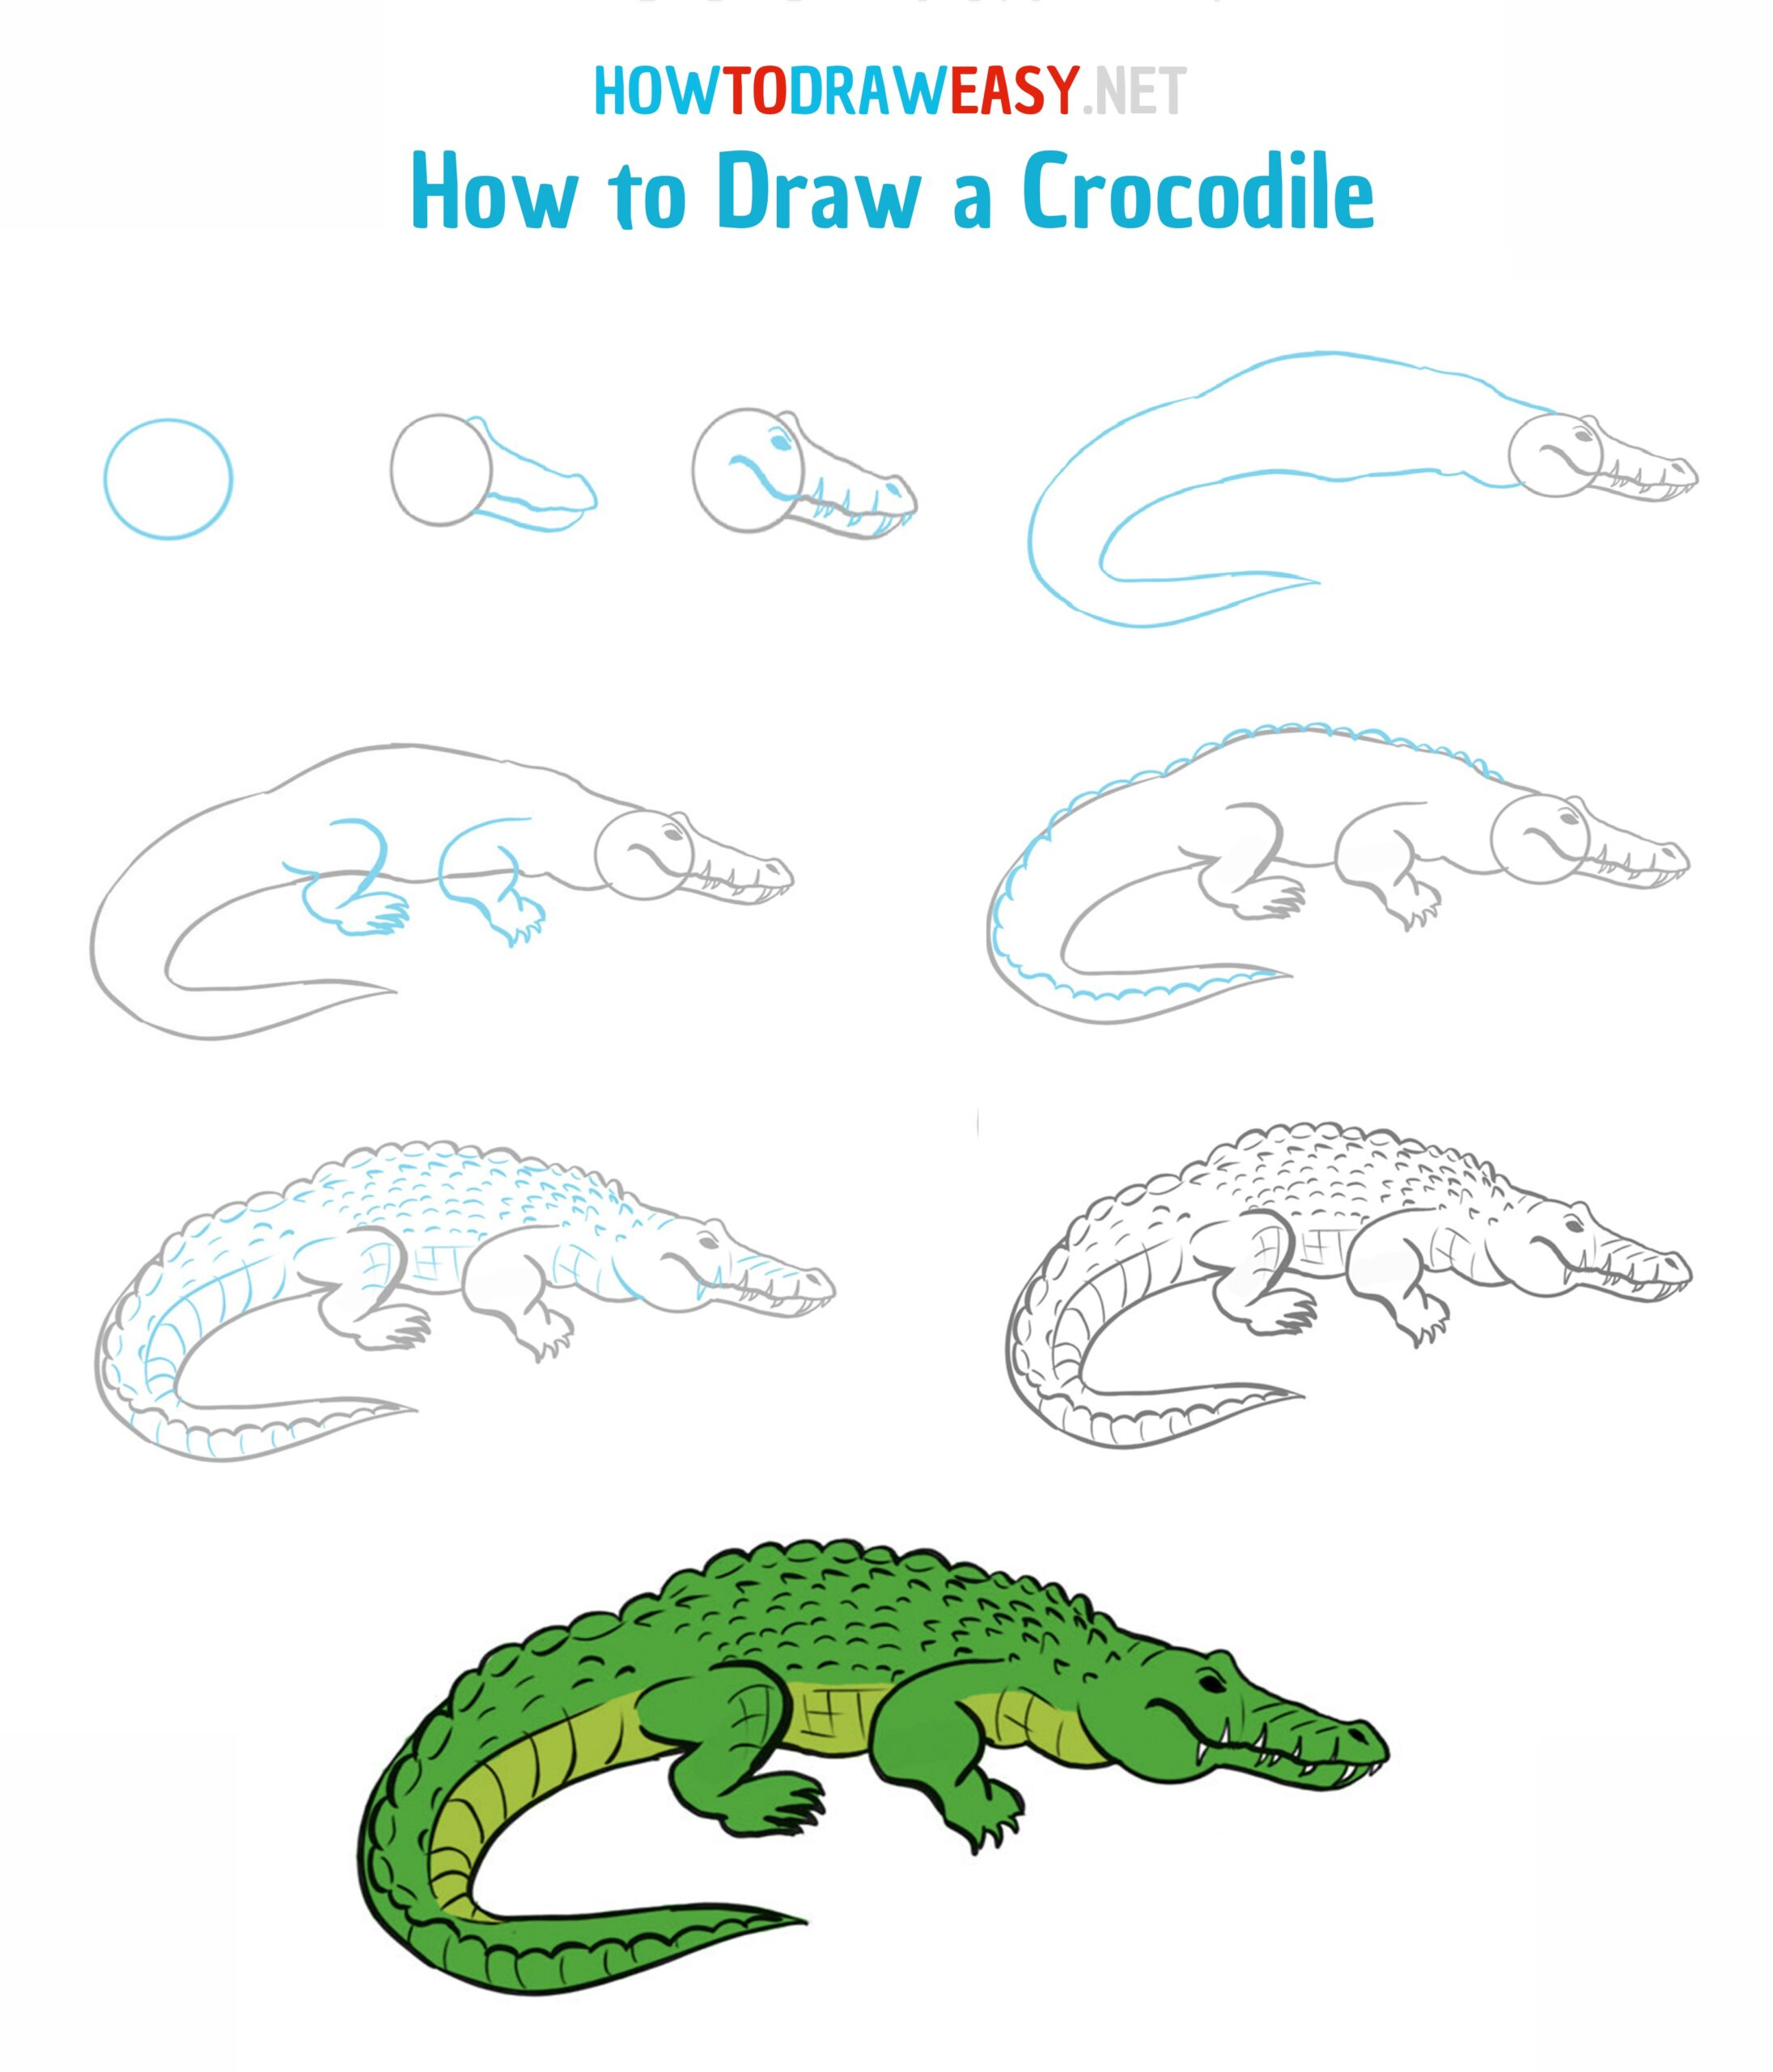 How to Draw a Crocodile   How to Draw Easy